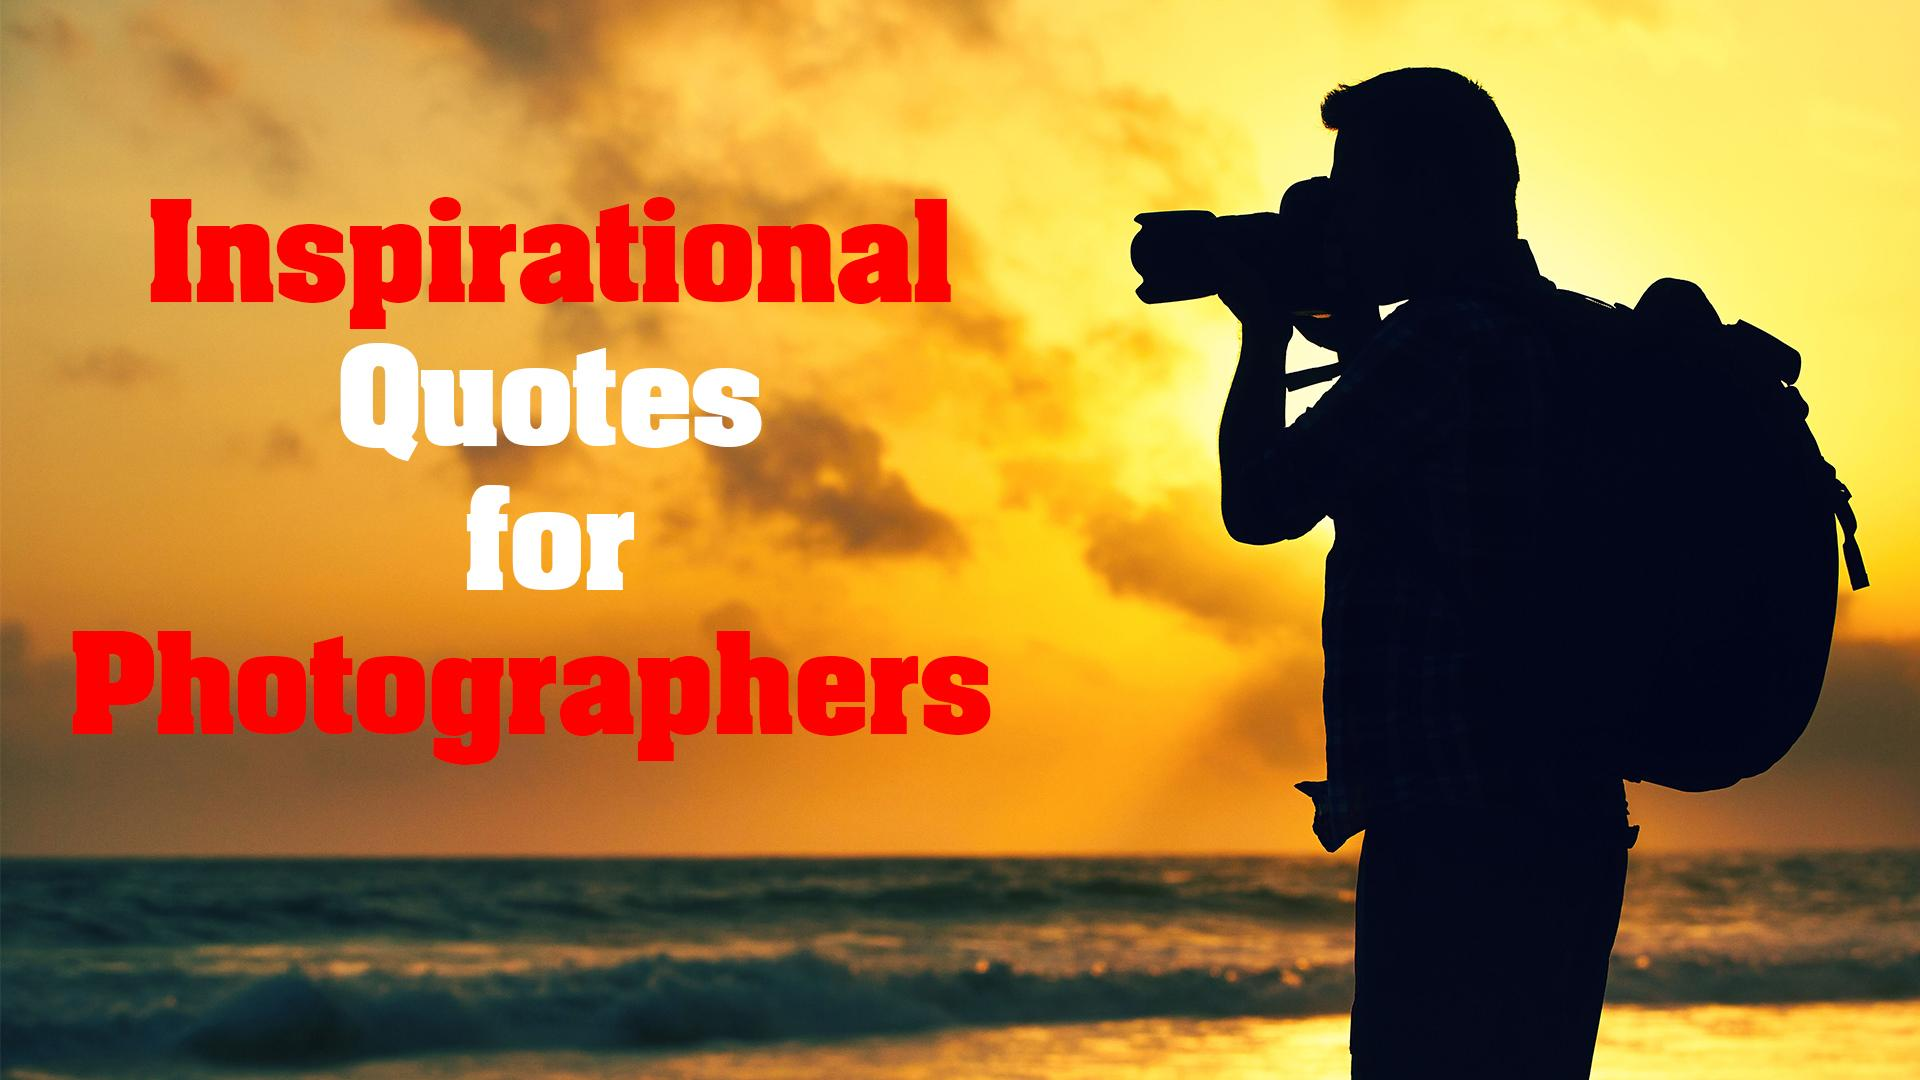 Inspirational Quotes for Photographers part 1